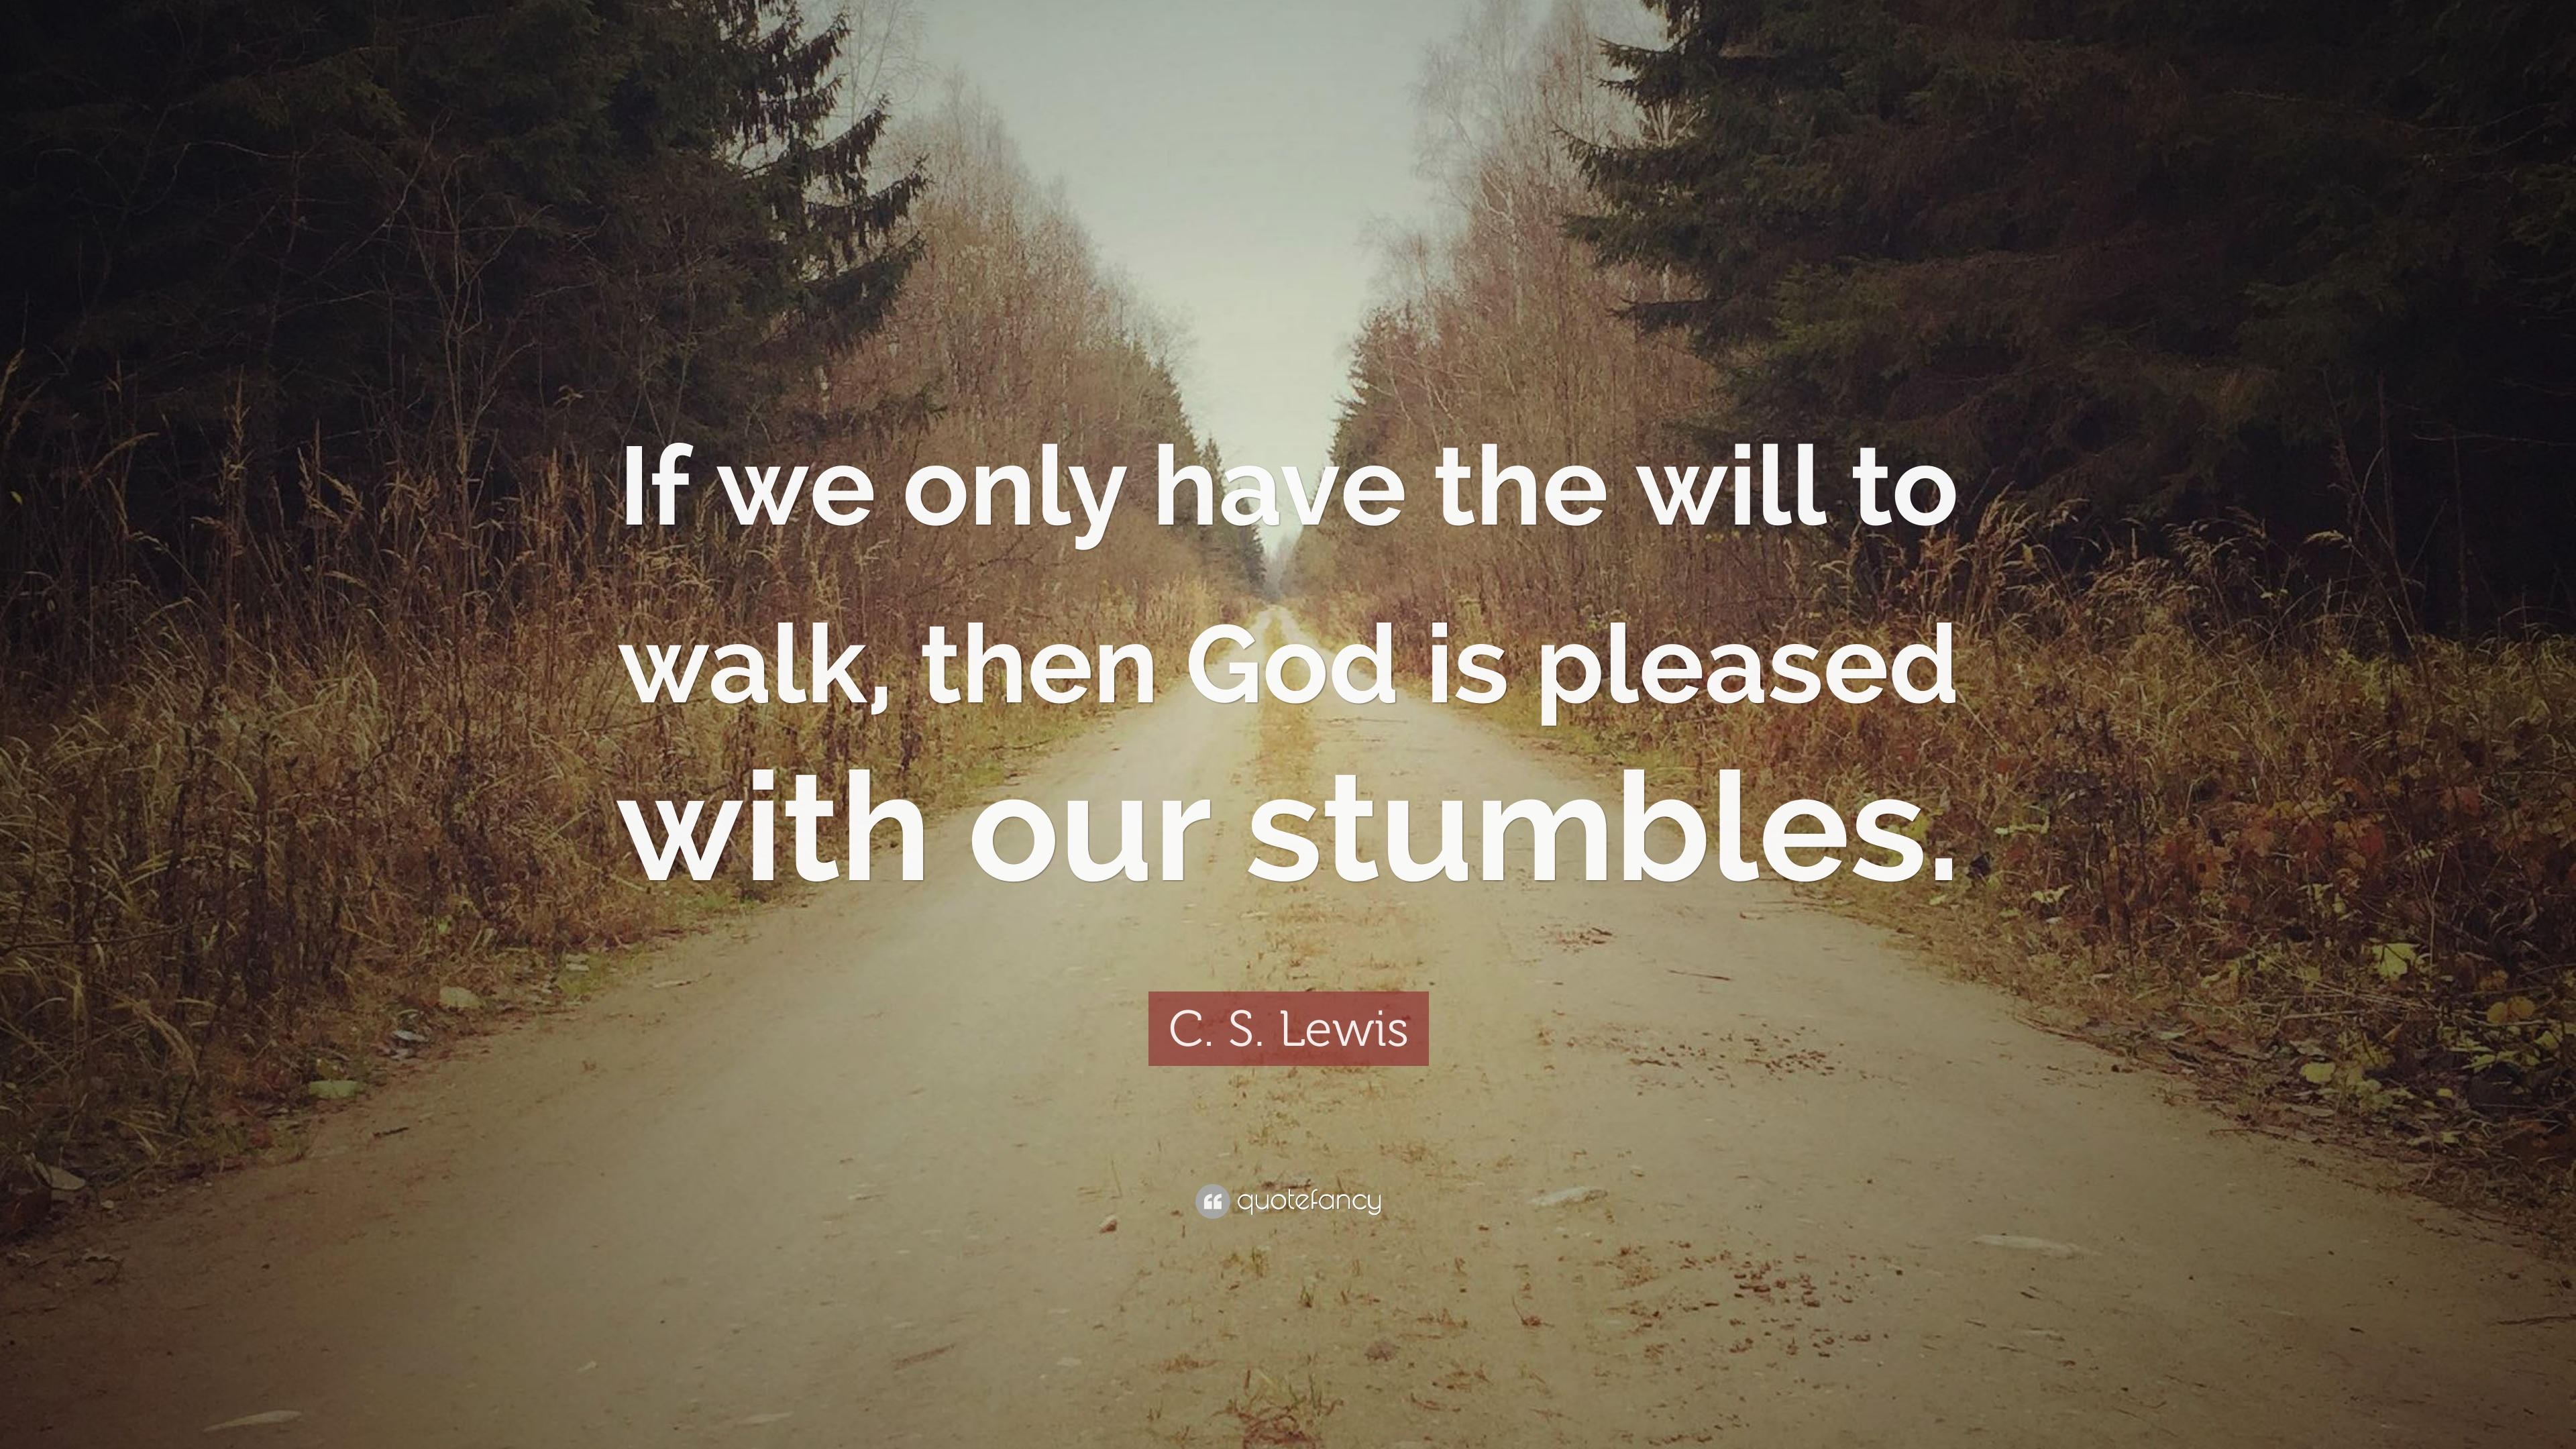 c s lewis quote if we only have the will to walk then god